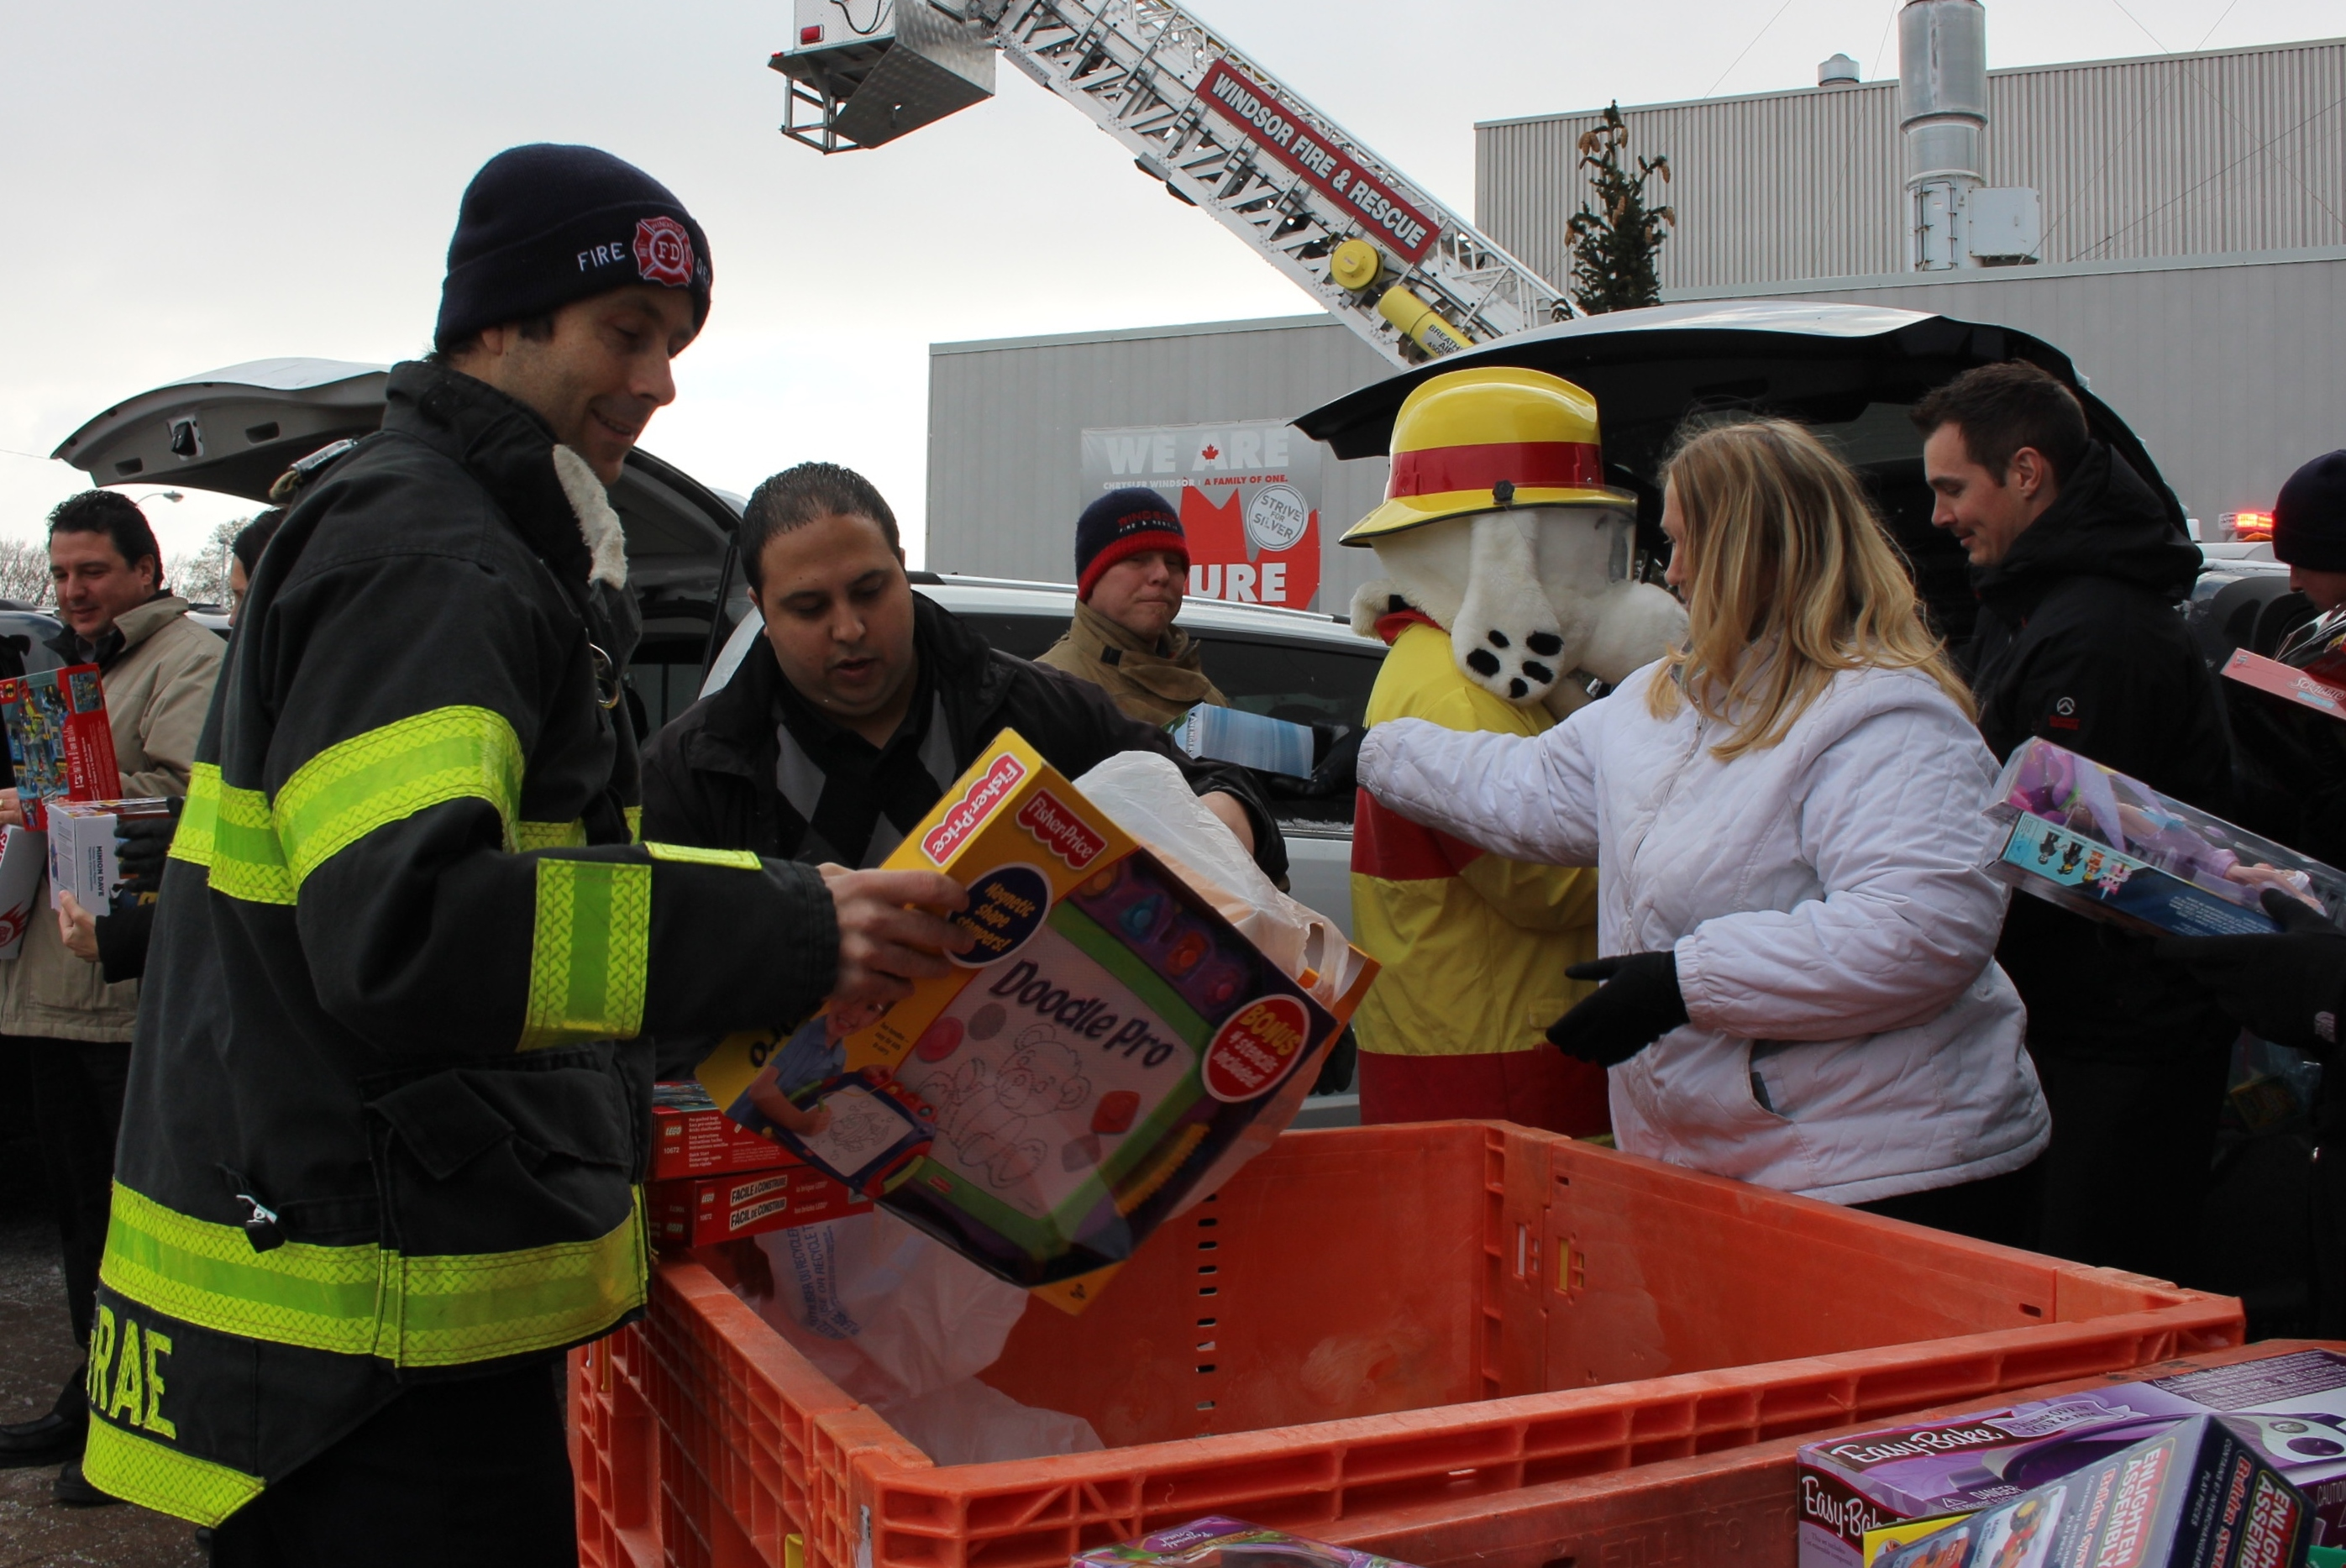 Windsor firefighter John McRae and the rest of his crew collect toys from Chrysler, being donated to Sparky's Toy Drive, November 20, 2014. (photo by Mike Vlasveld)